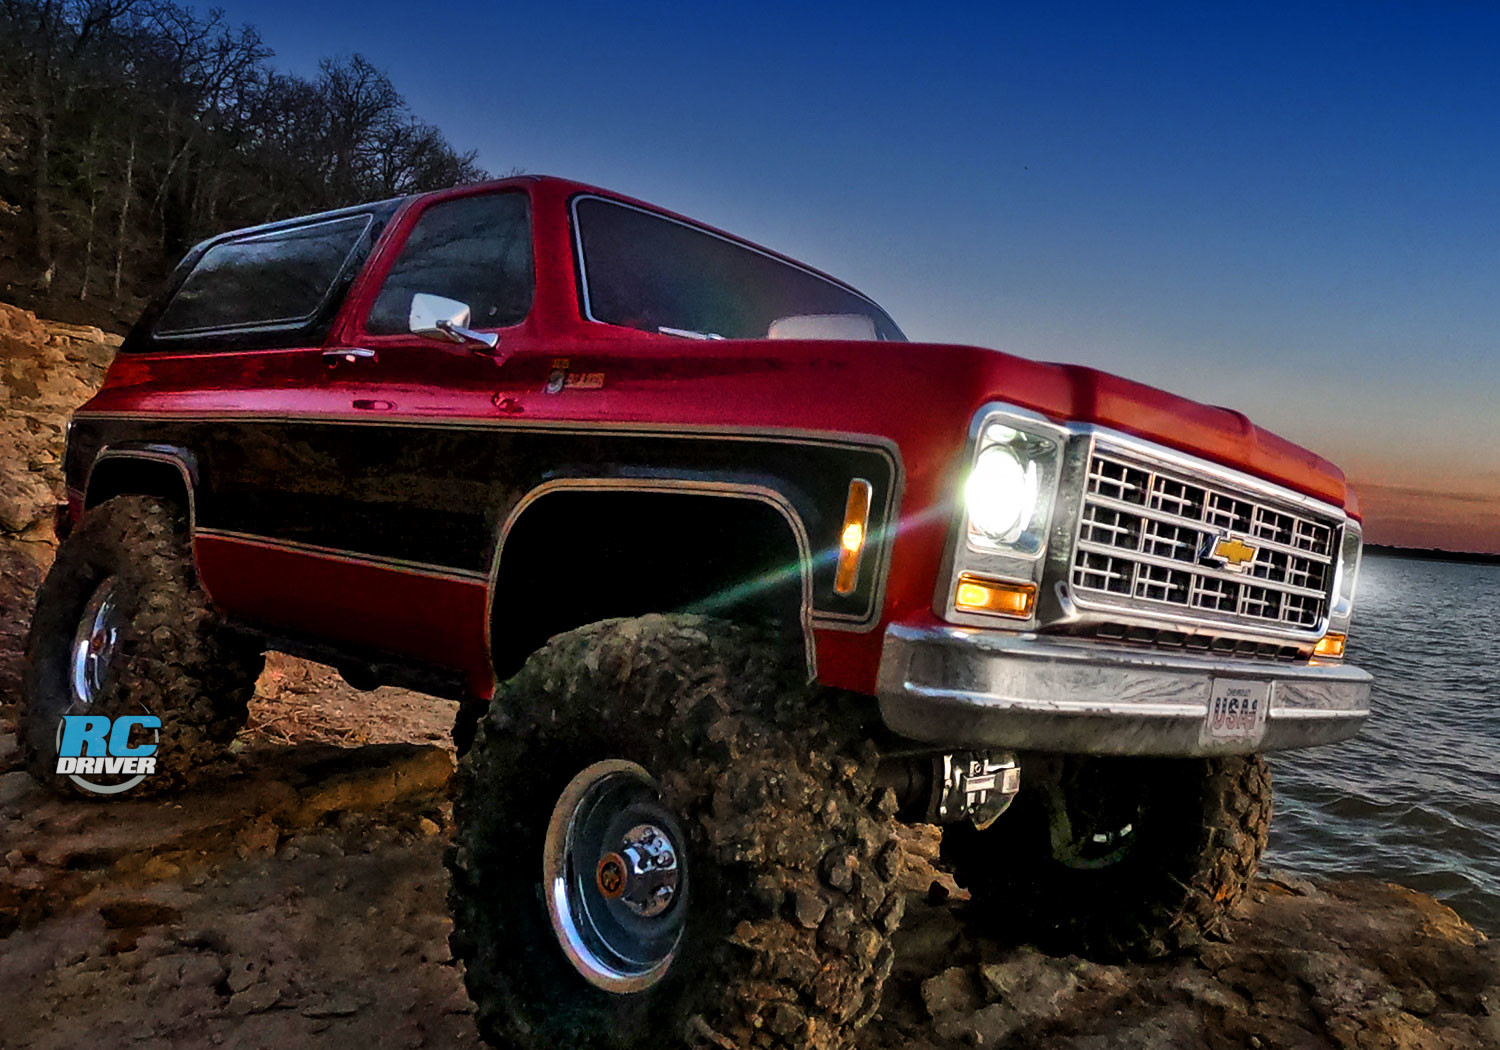 Traxxas LED Light Kit for the TRX-4 Blazer